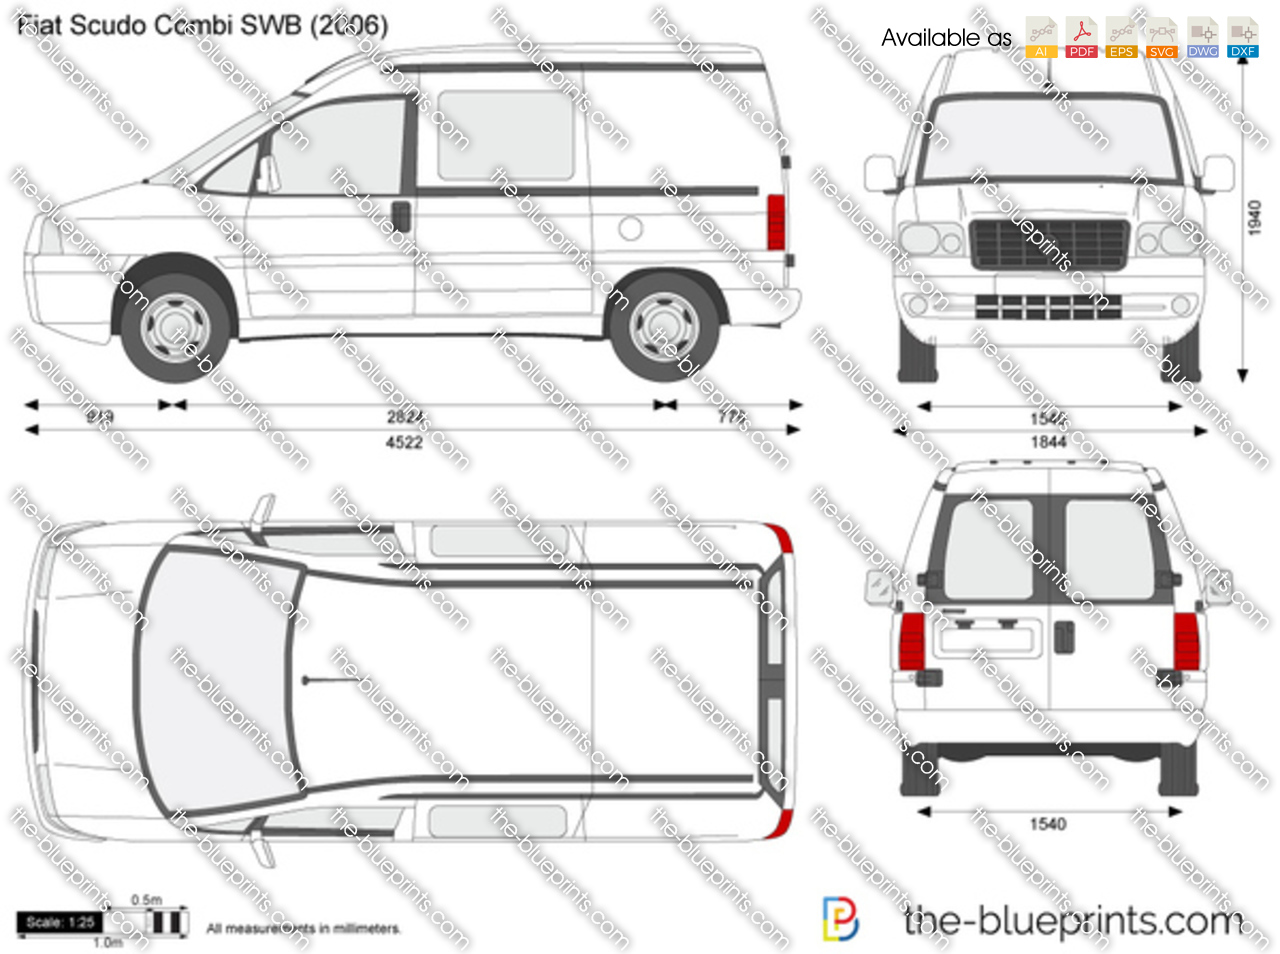 fiat scudo combi swb vector drawing